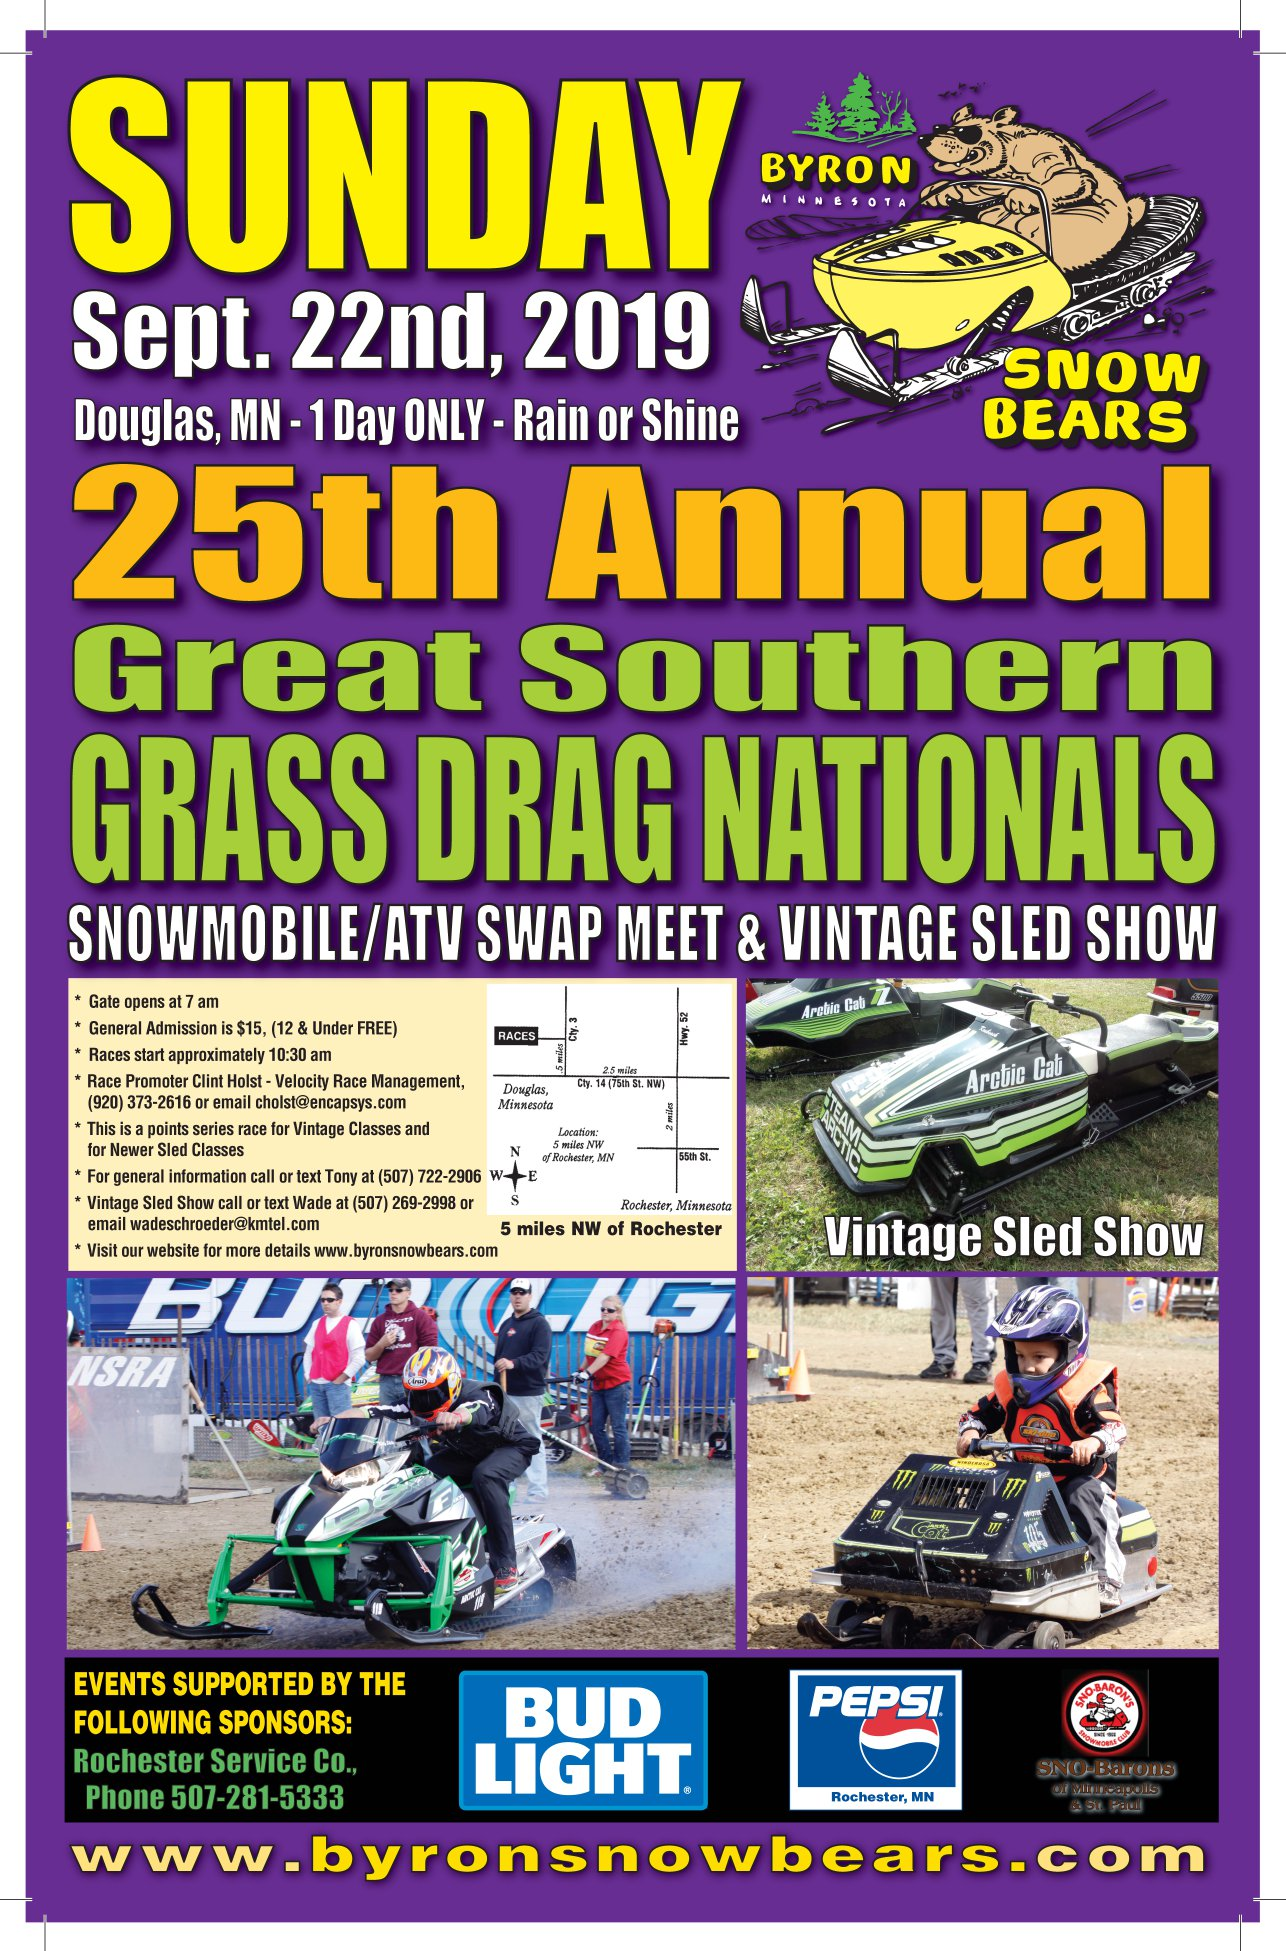 Great Southern Snowmobile Grass Drags